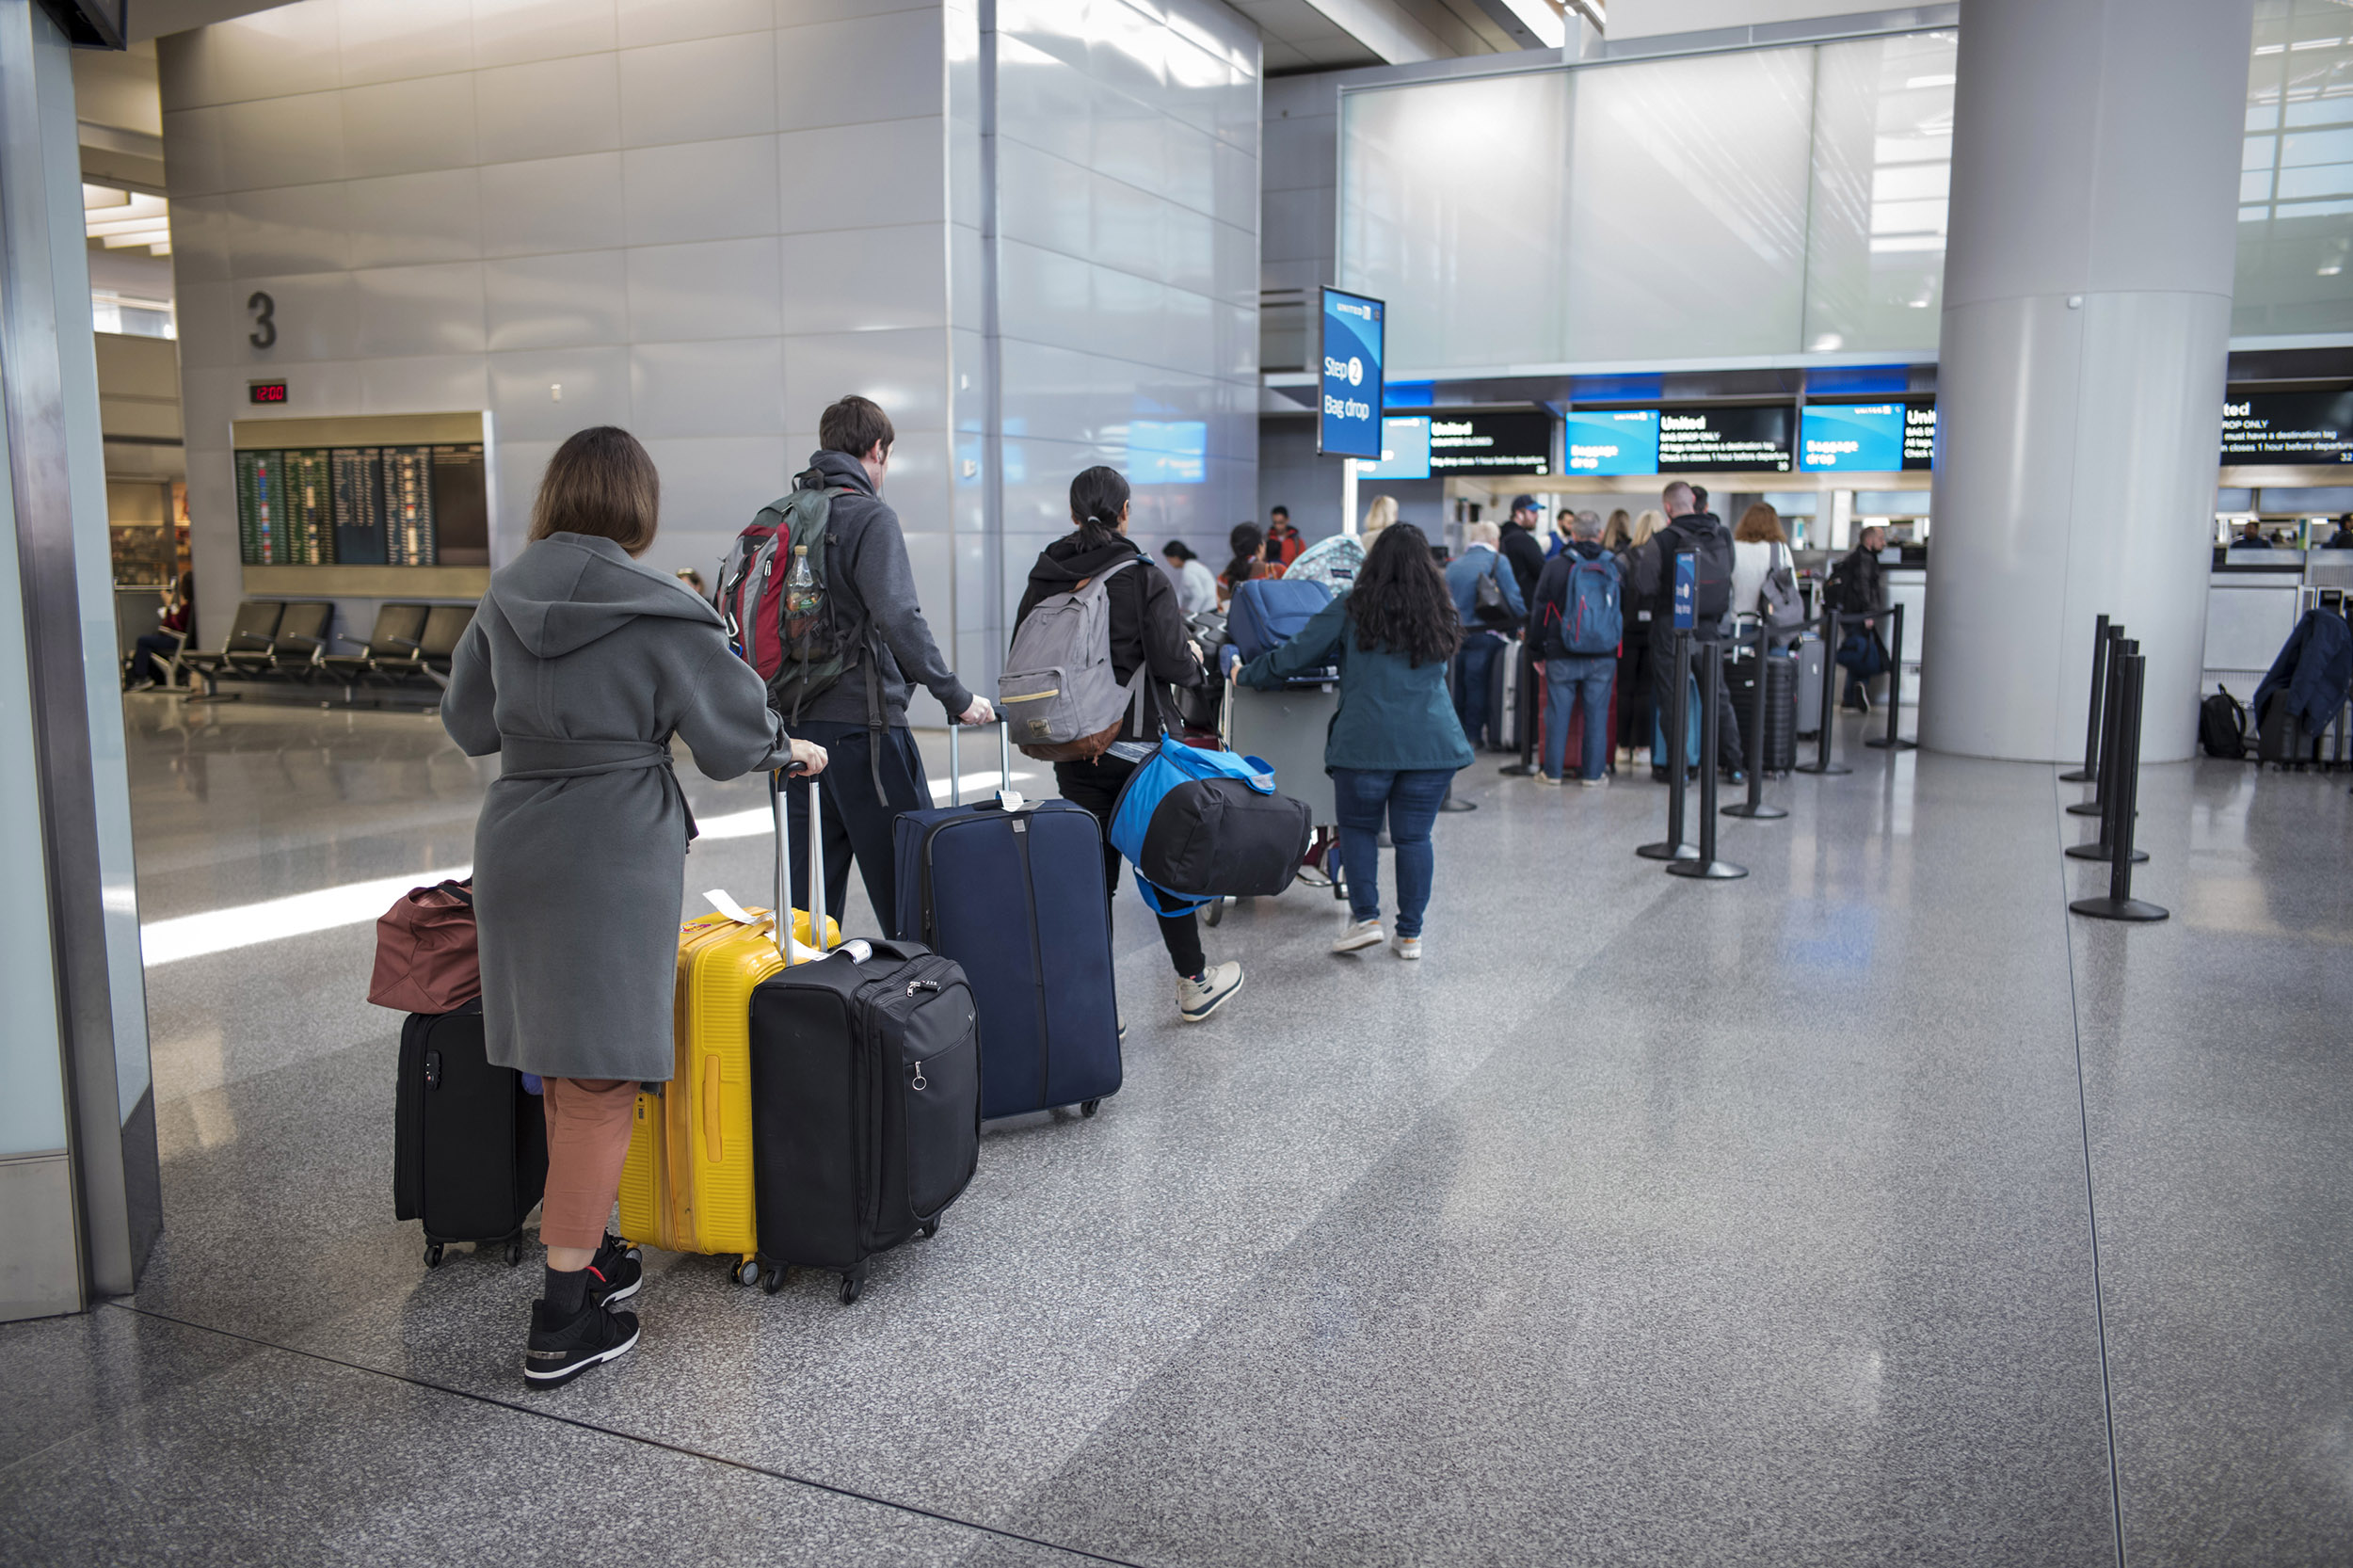 Travelers wait to check their bags at San Francisco International Airport in San Francisco, California, on Friday, January 31, 2020.